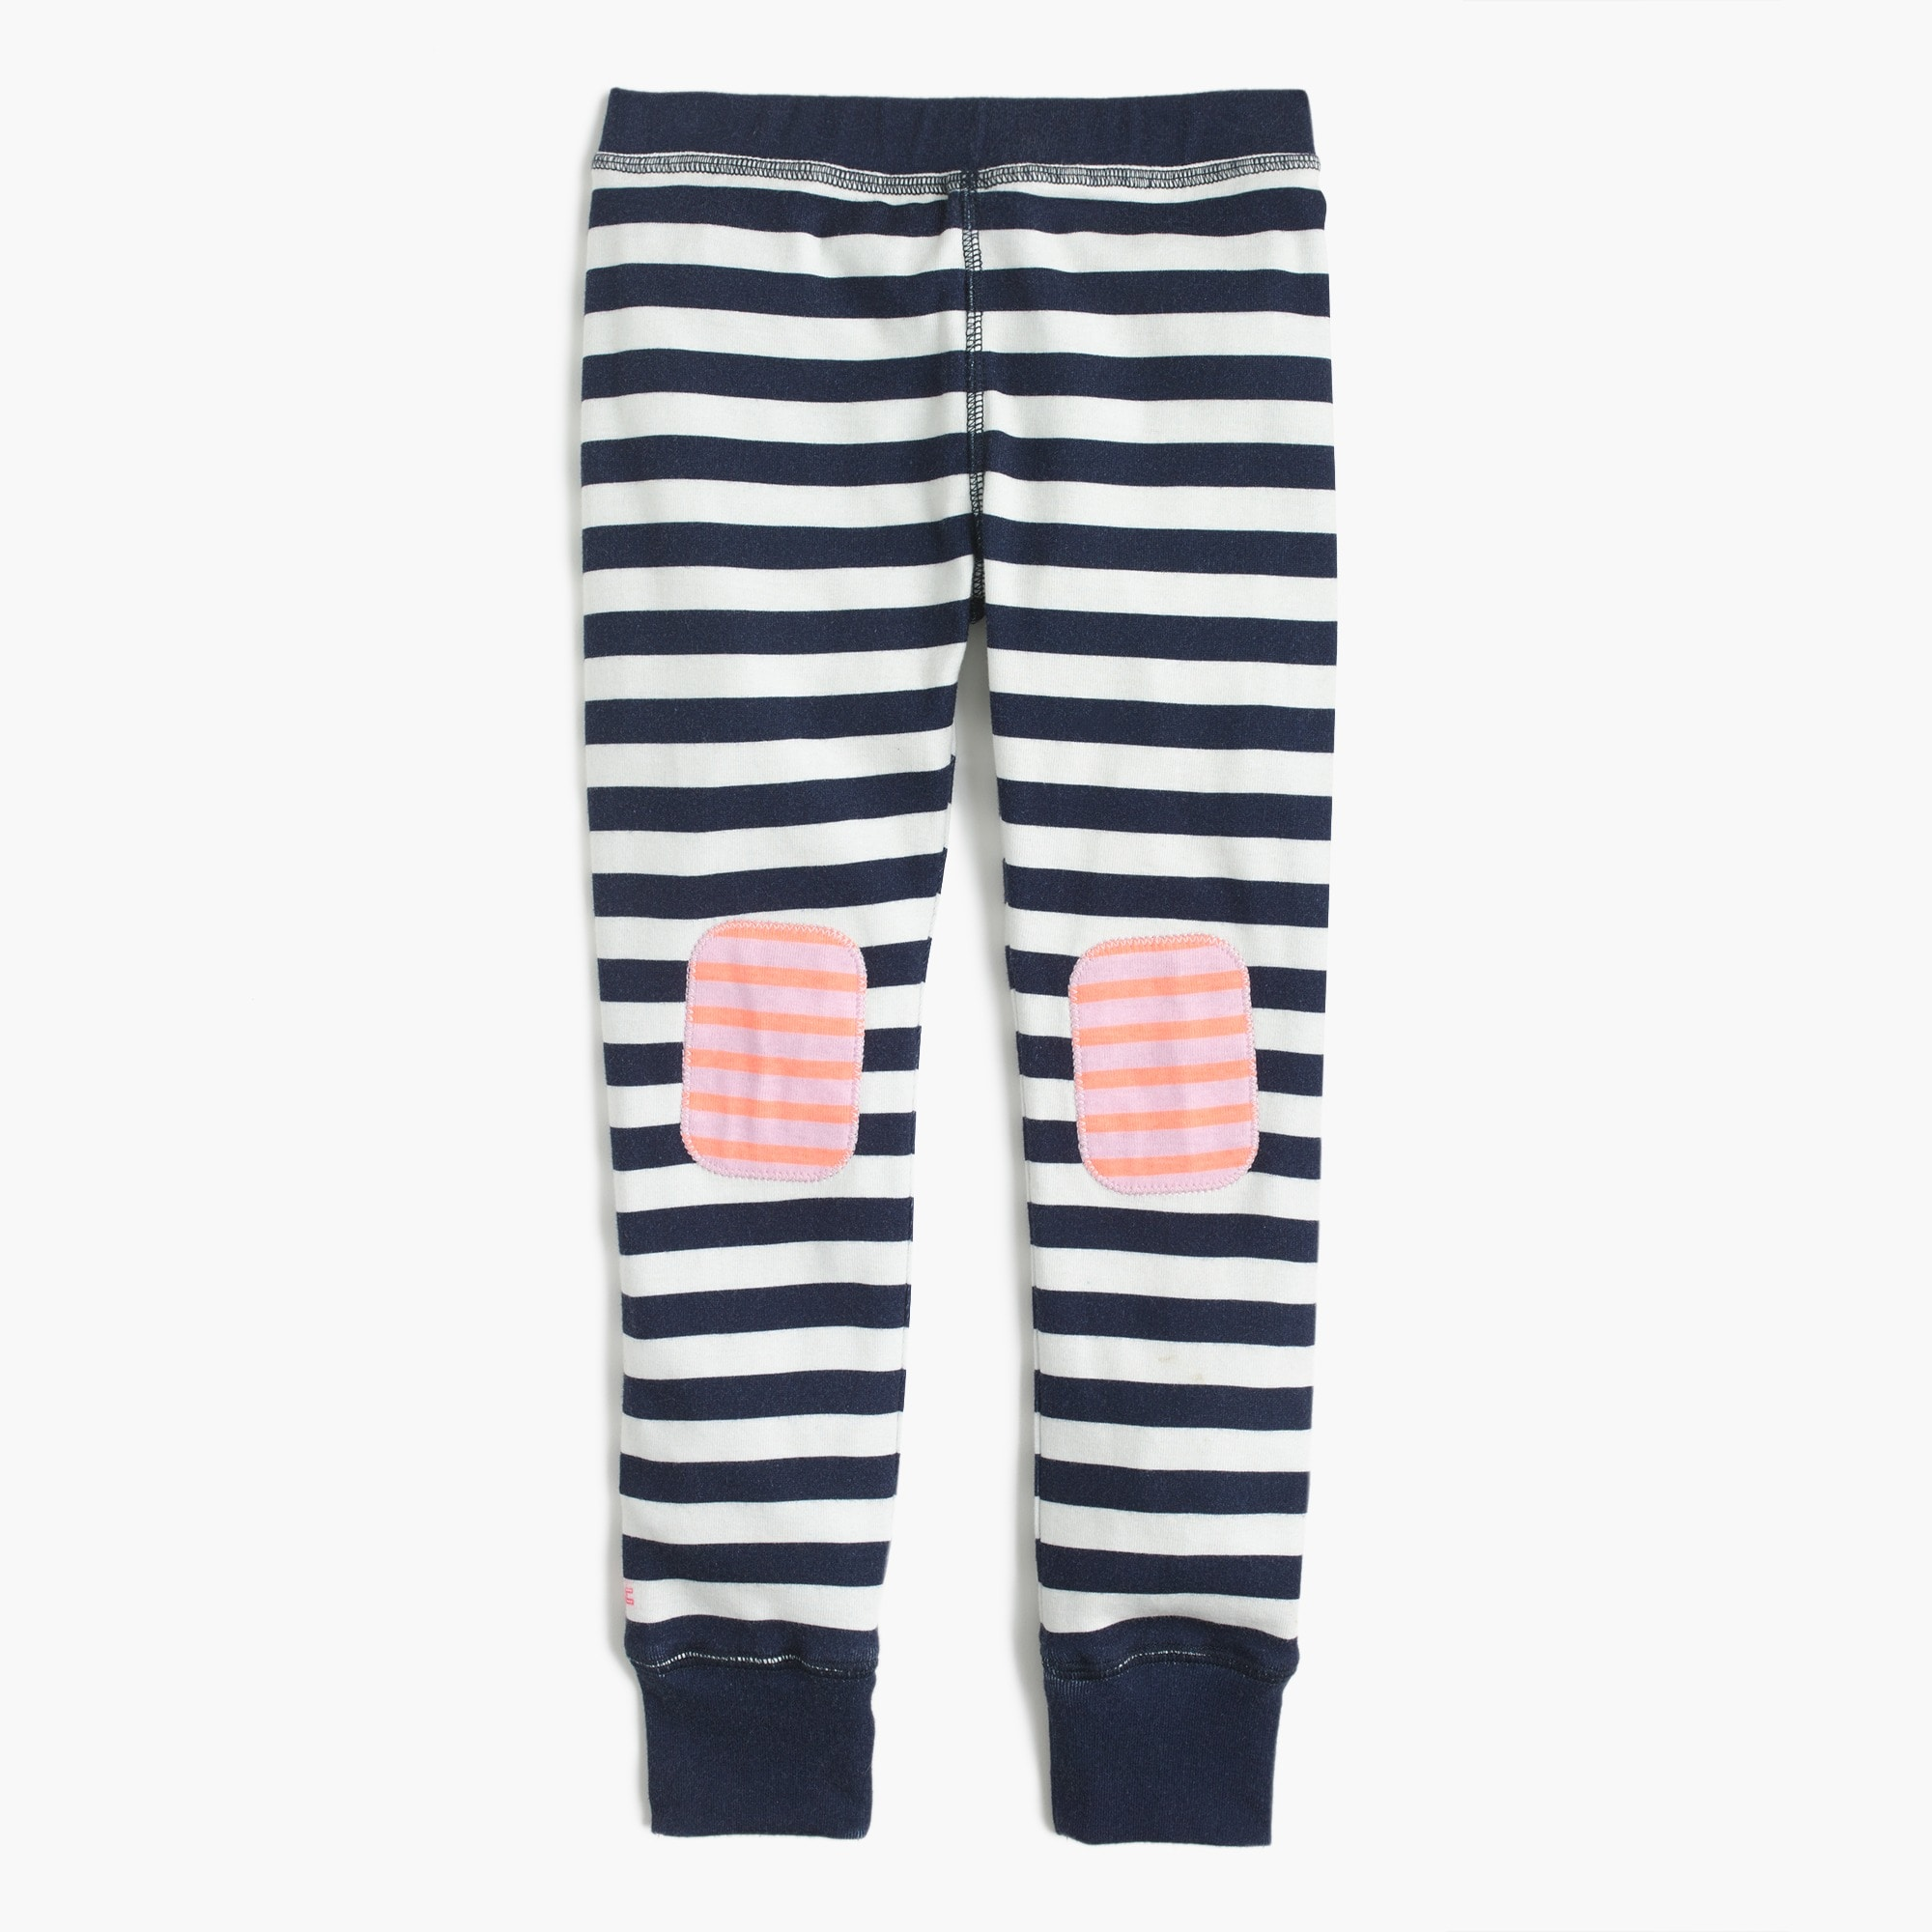 Image 2 for Kids' pajama set in mixed stripes